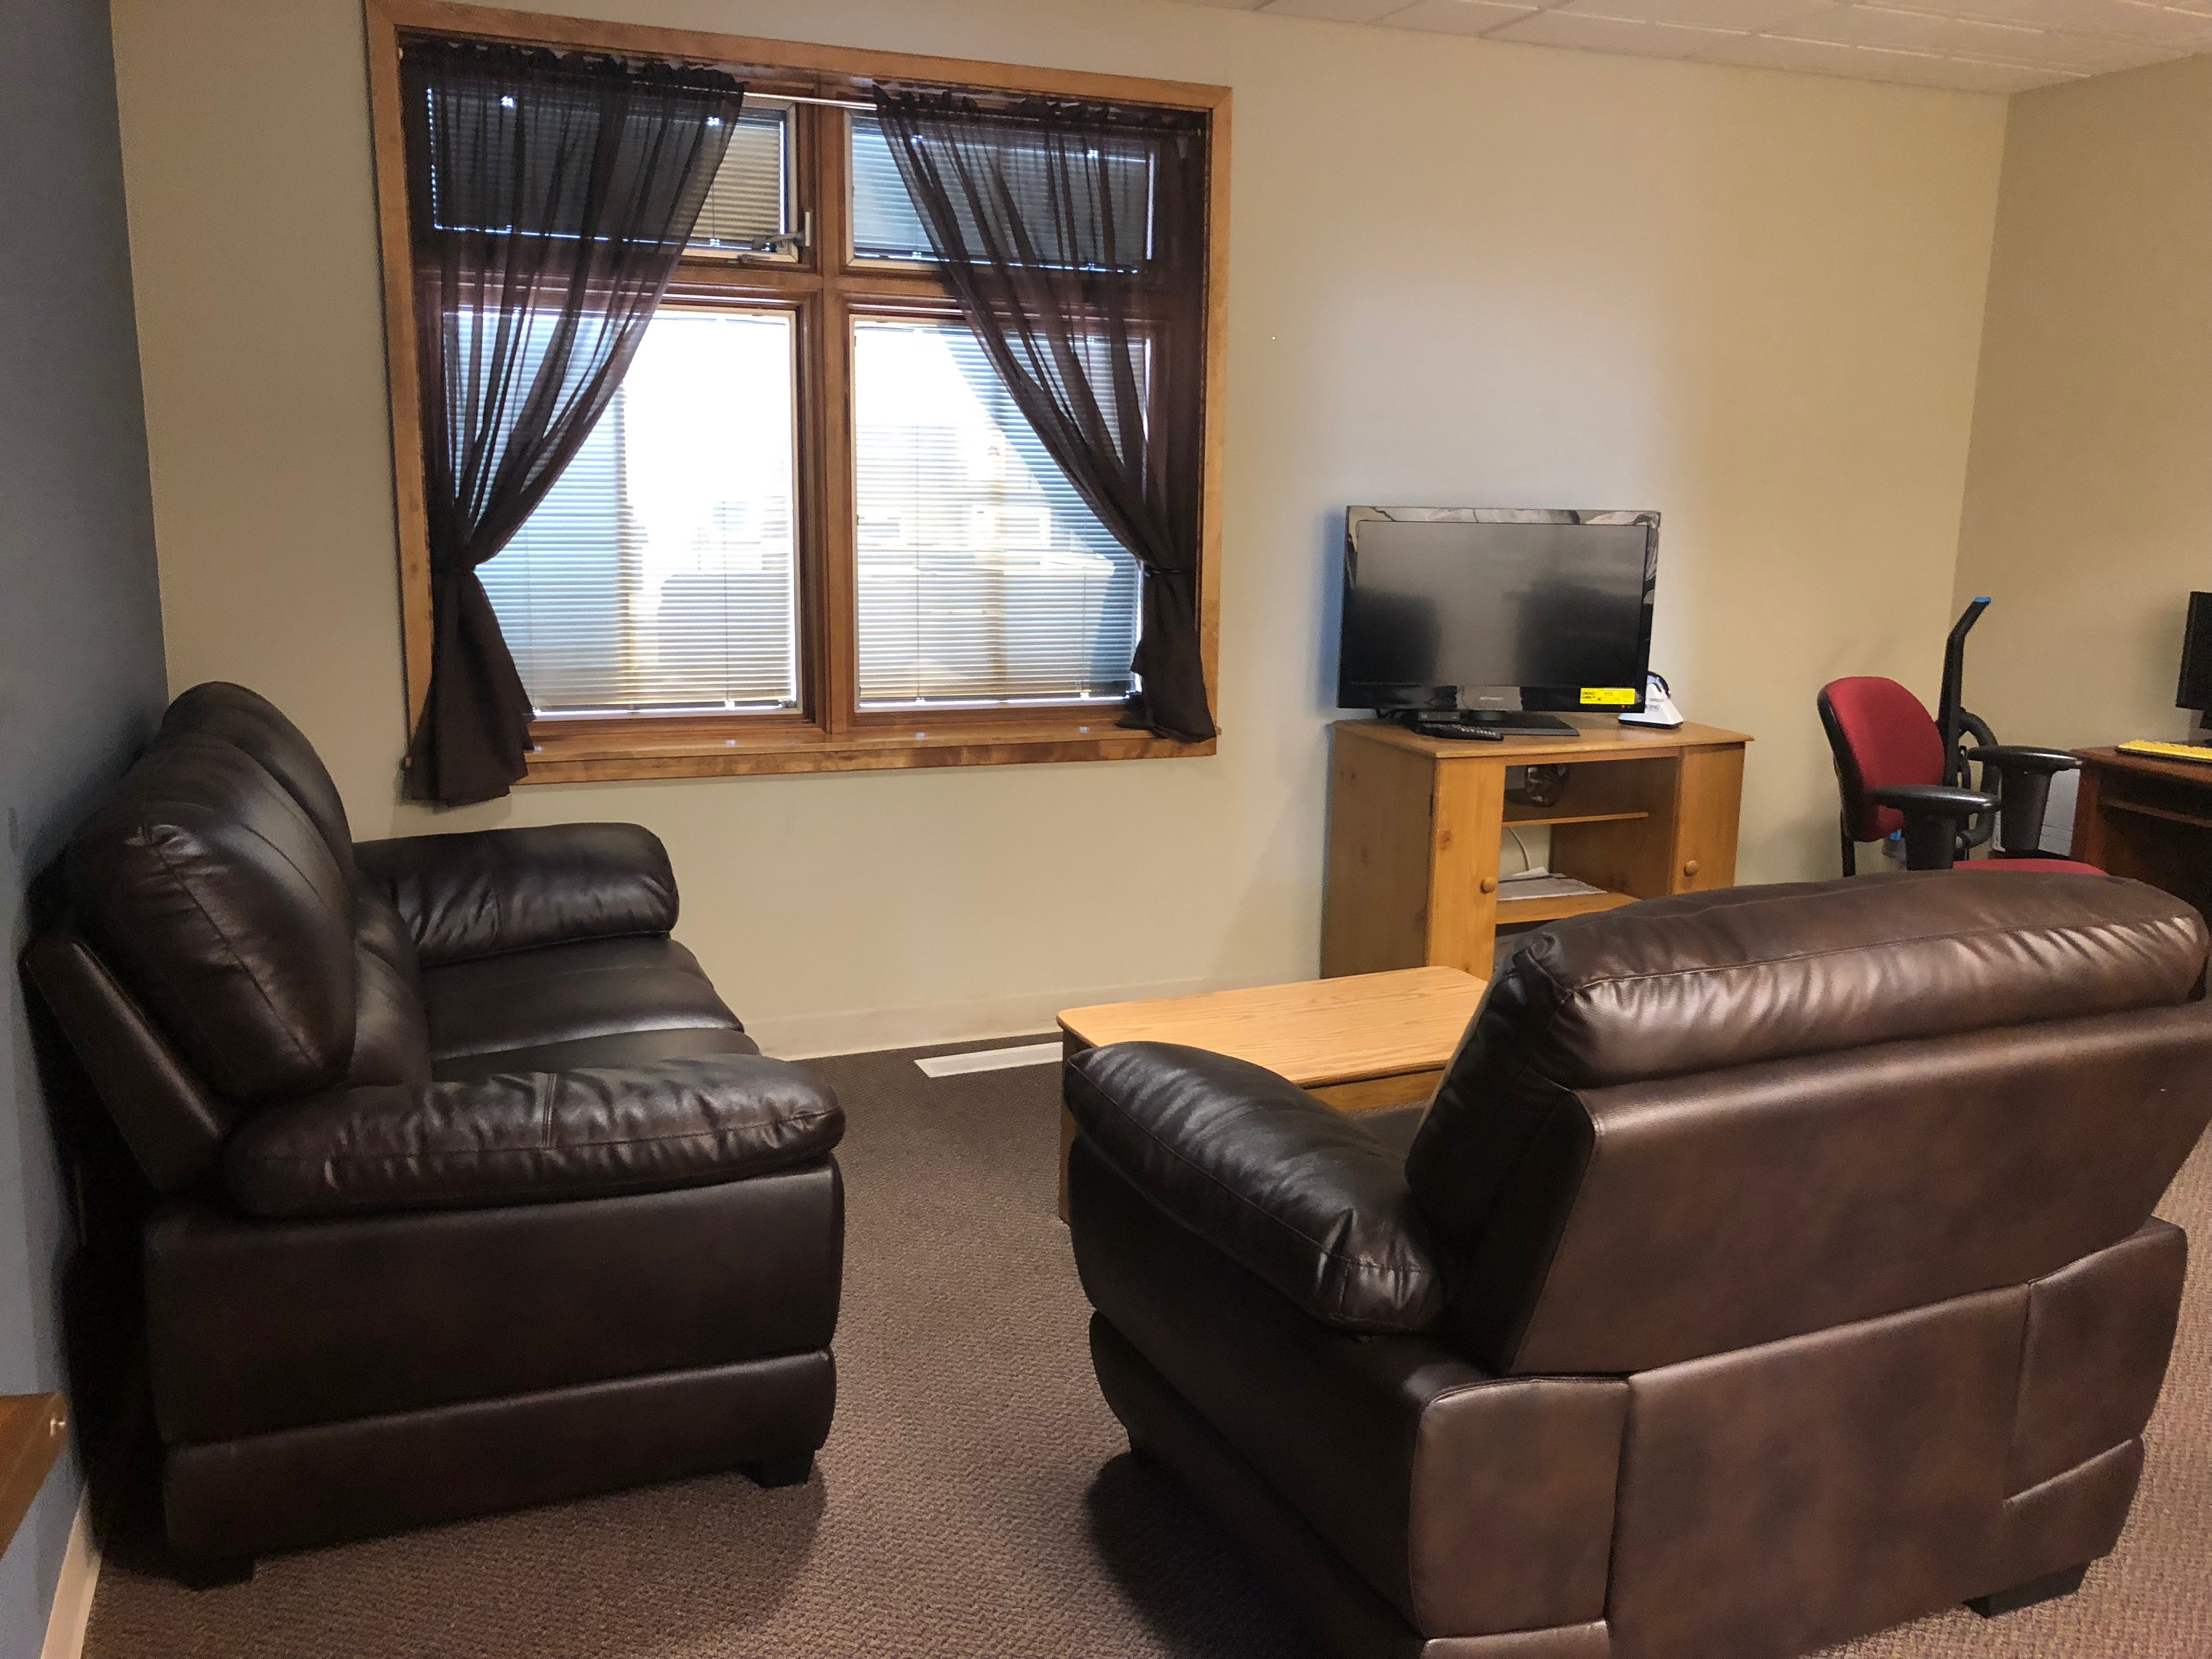 Living area containing a leather loveseat and recliner with a coffee table on the floor in front of them. The recliner is facing a window with green curtains. To the right of the window is a stand with a TV.